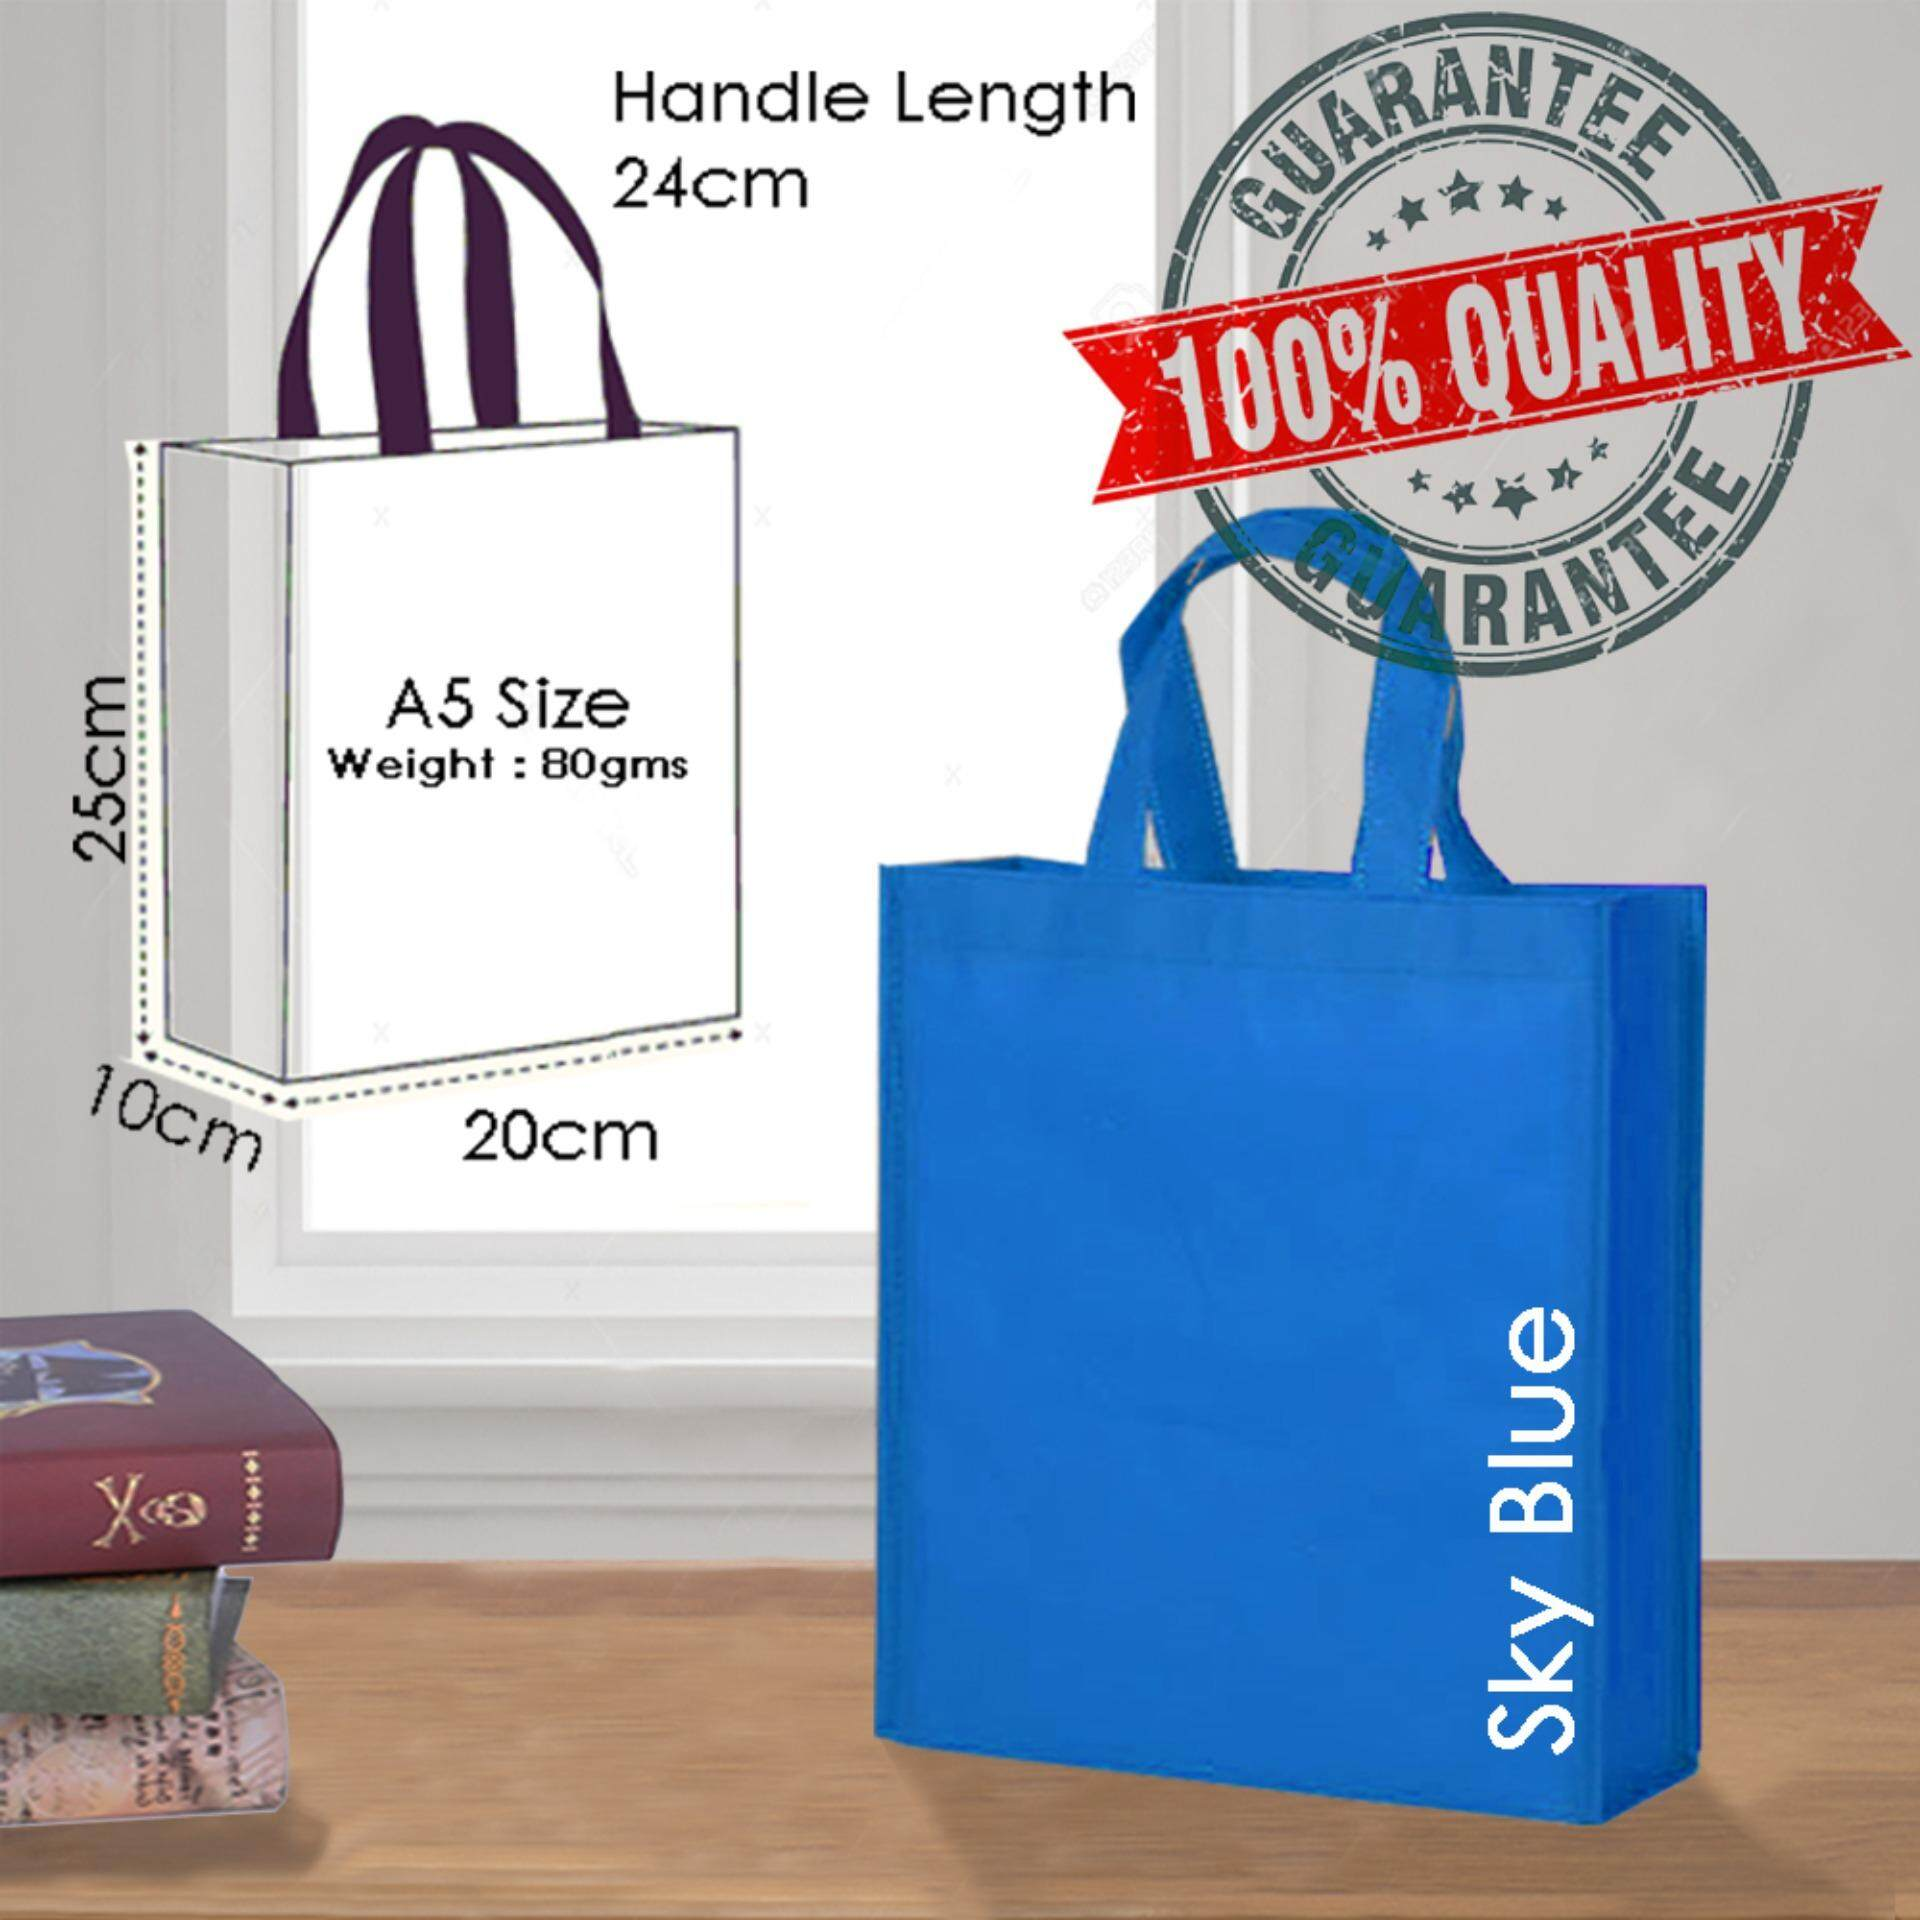 [Ready Stock] BCG Malaysia A5 Non Woven Bag Recycle Bag 100% Quality Assured